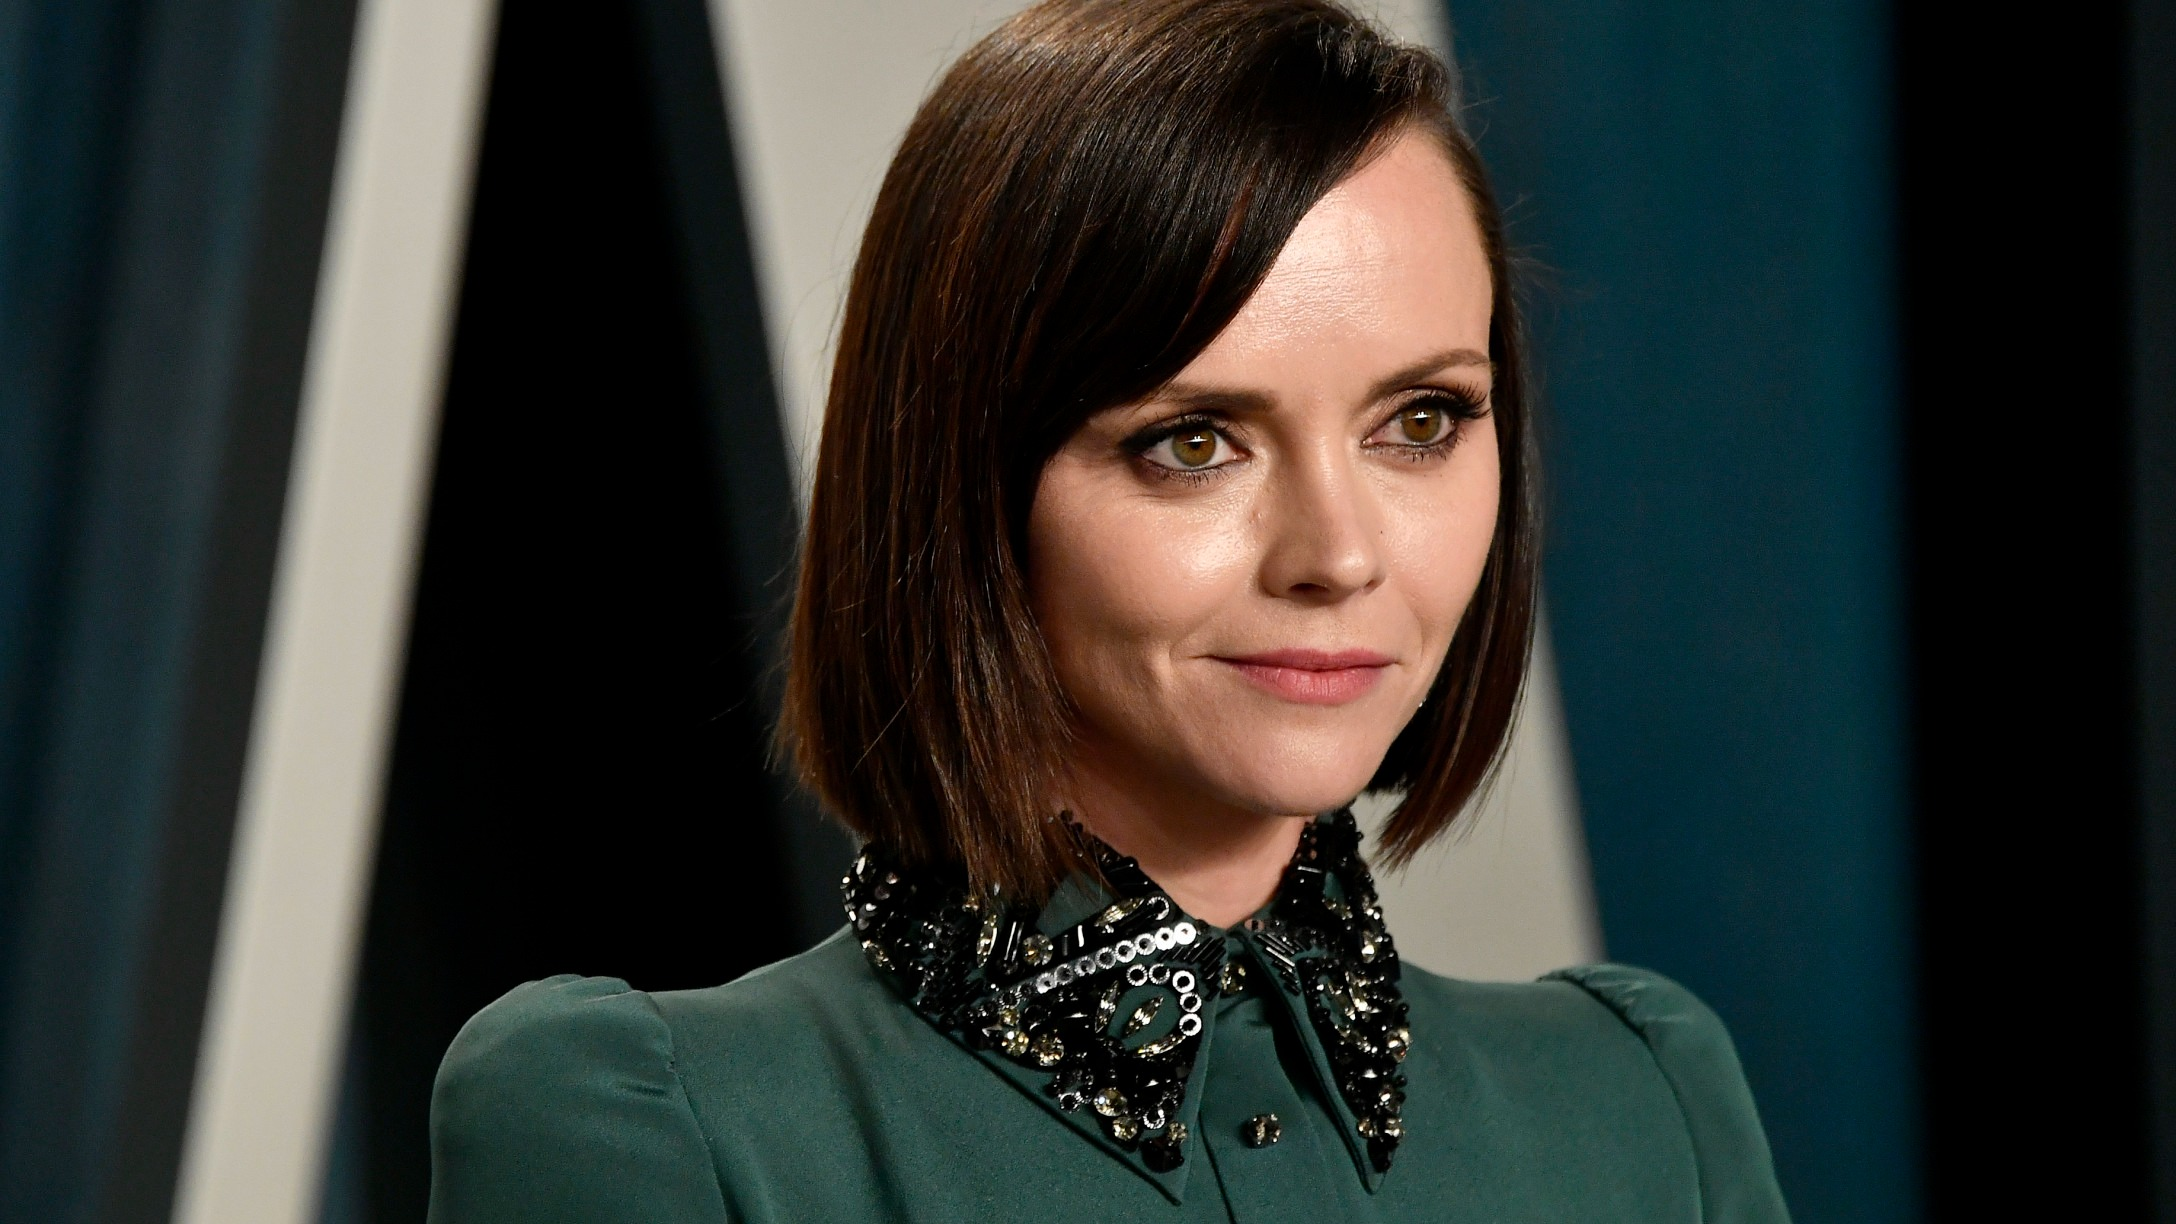 Christina Ricci Pokes Fun at Her Maternity Style, Saying It's 'Influenced by Gummy Bears'